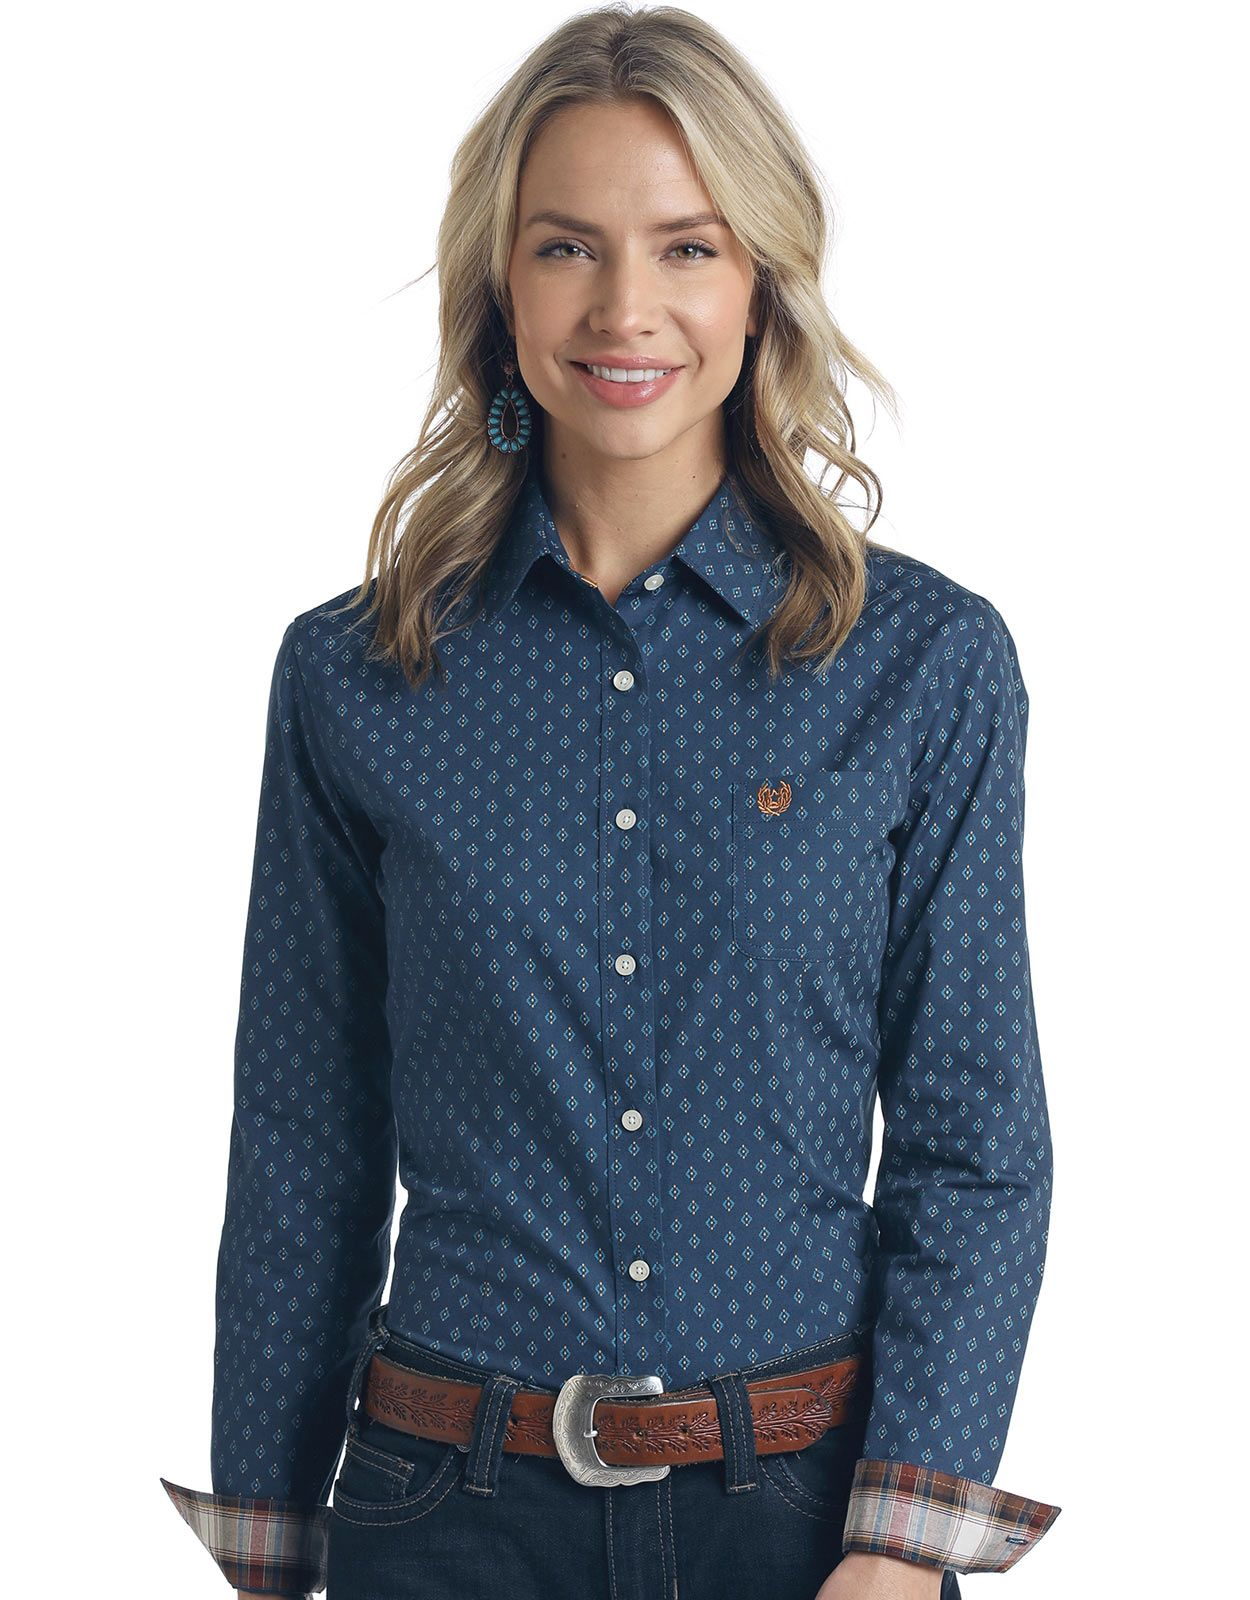 Rough Stock Women's Long Sleeve Print Button Down Shirt - Light Navy